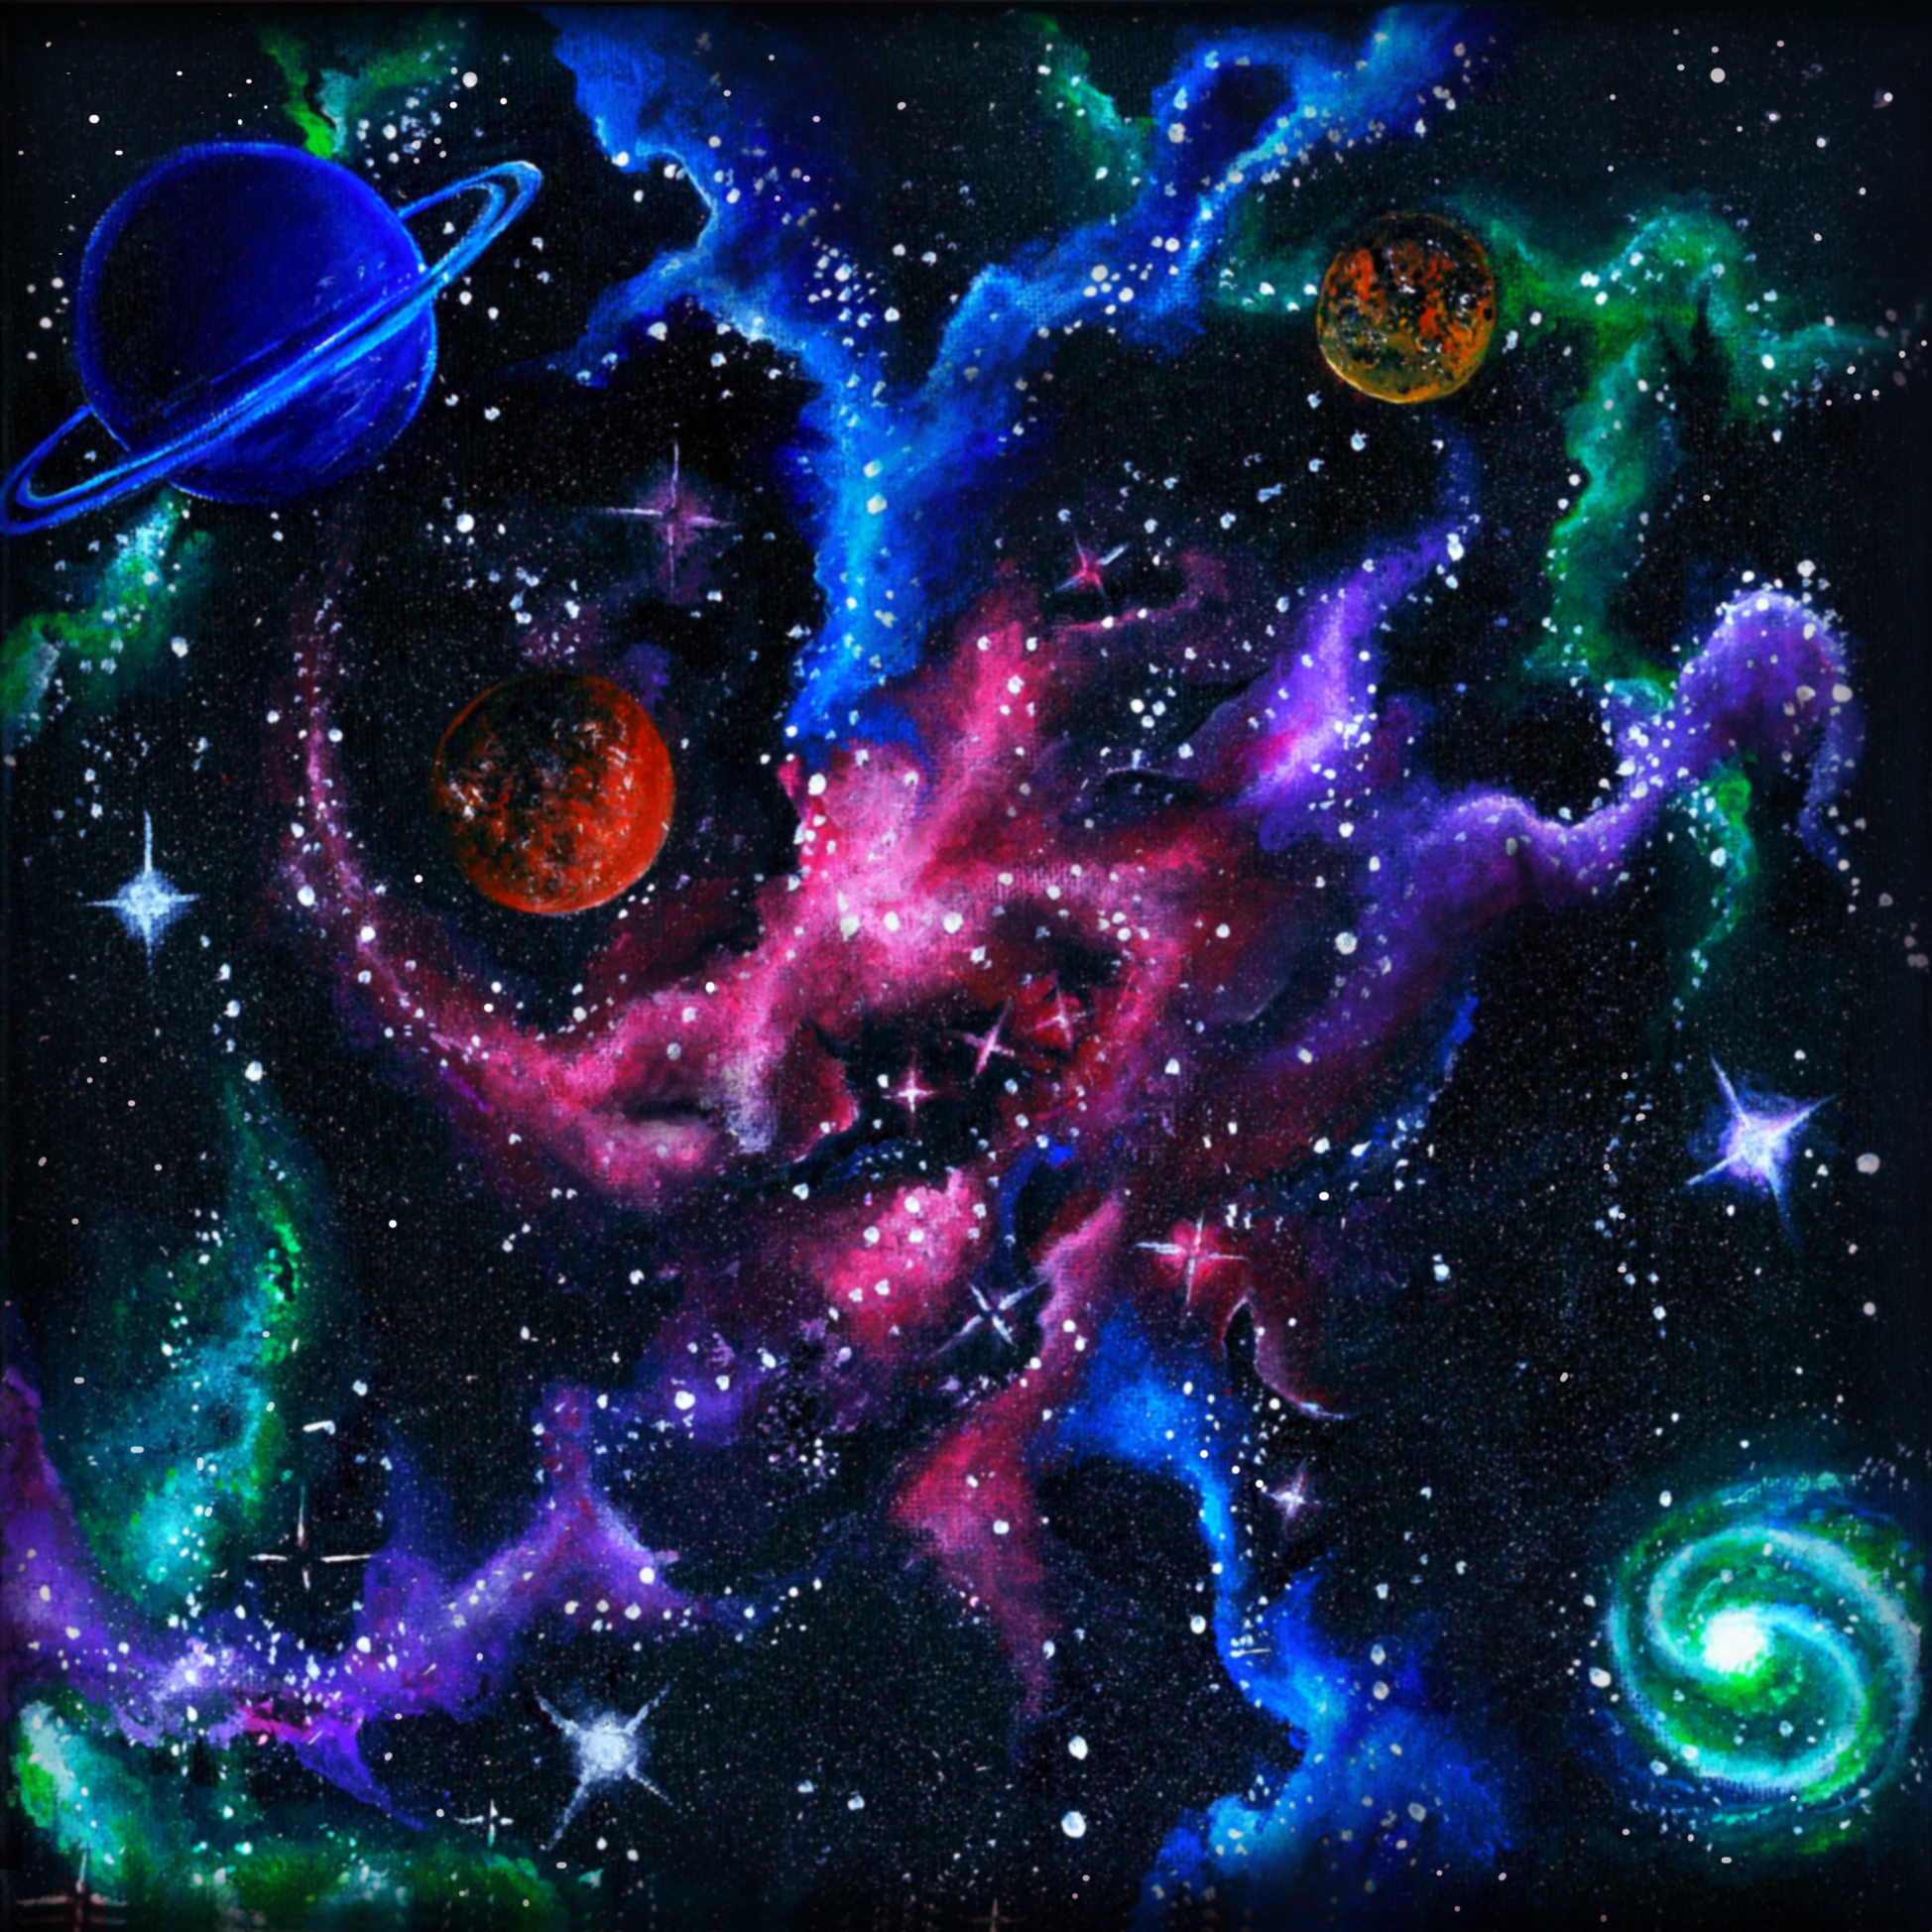 Glimpse of the Galactic